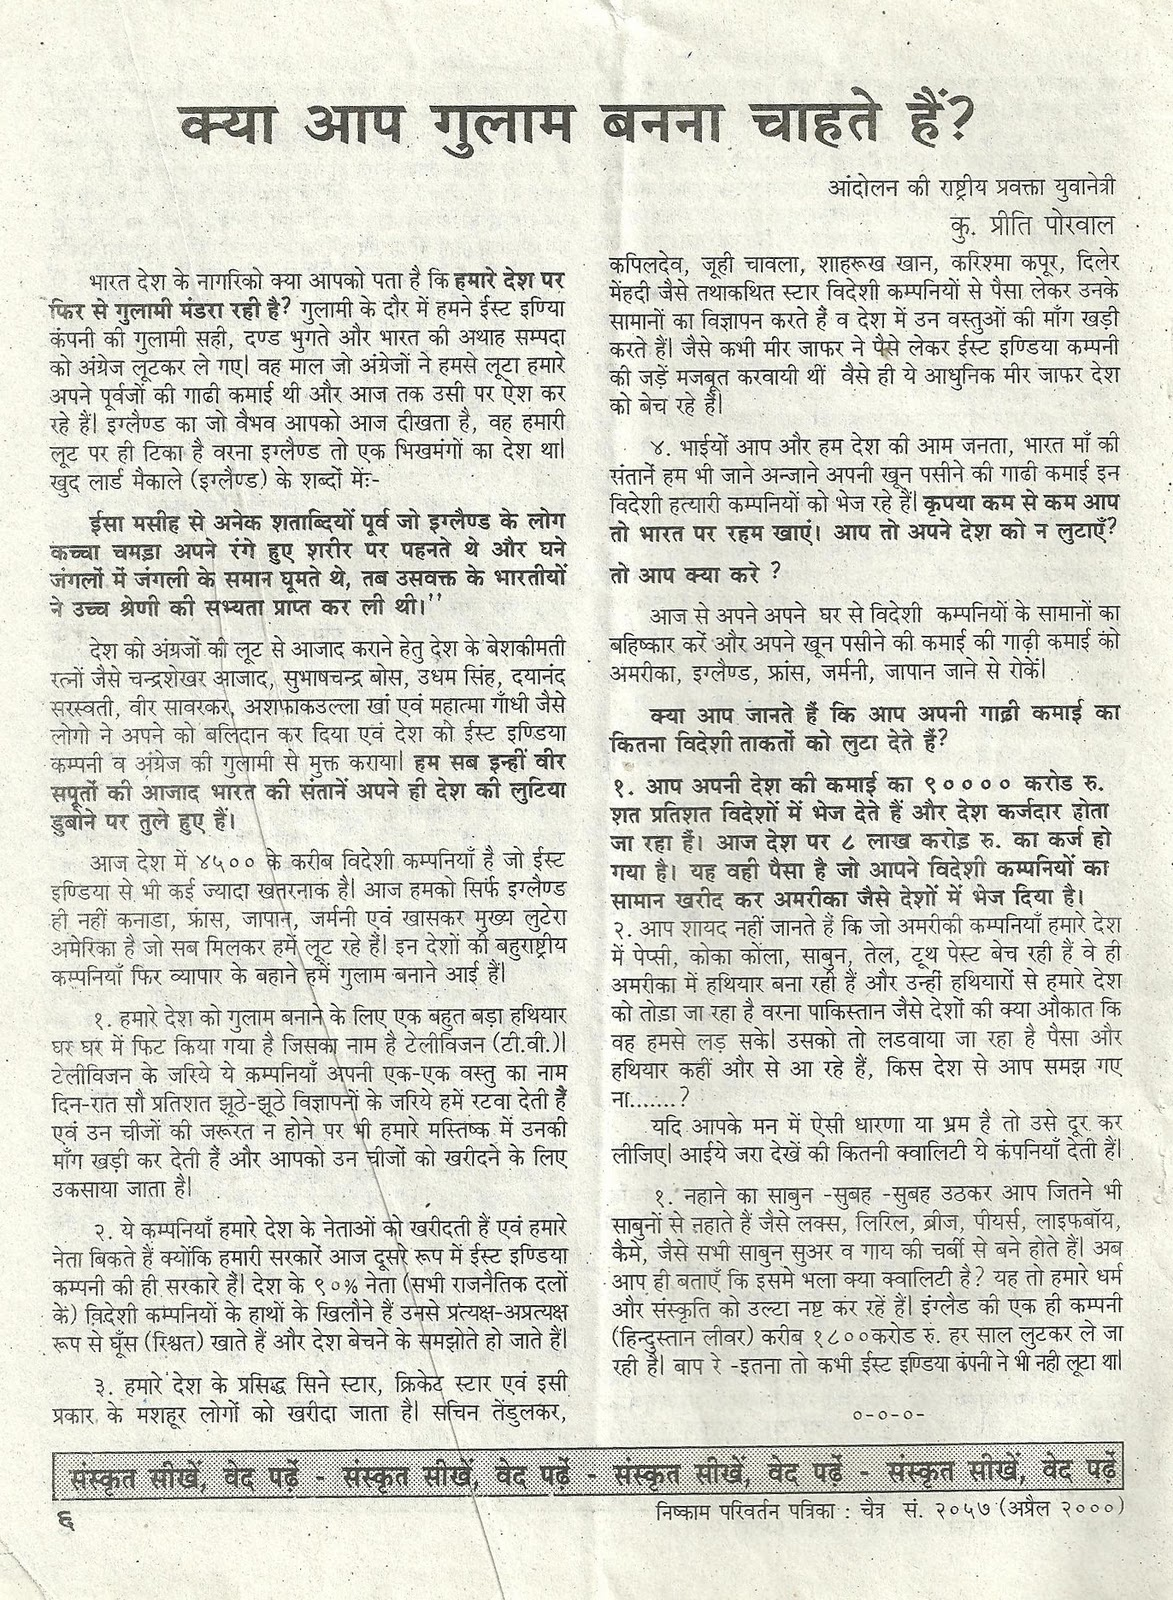 marathi essay depot A marathi book essay of in autobiography plzz farmer  essay in marathi essay  depot, free essays on essay on autobiography of a book in marathi language.